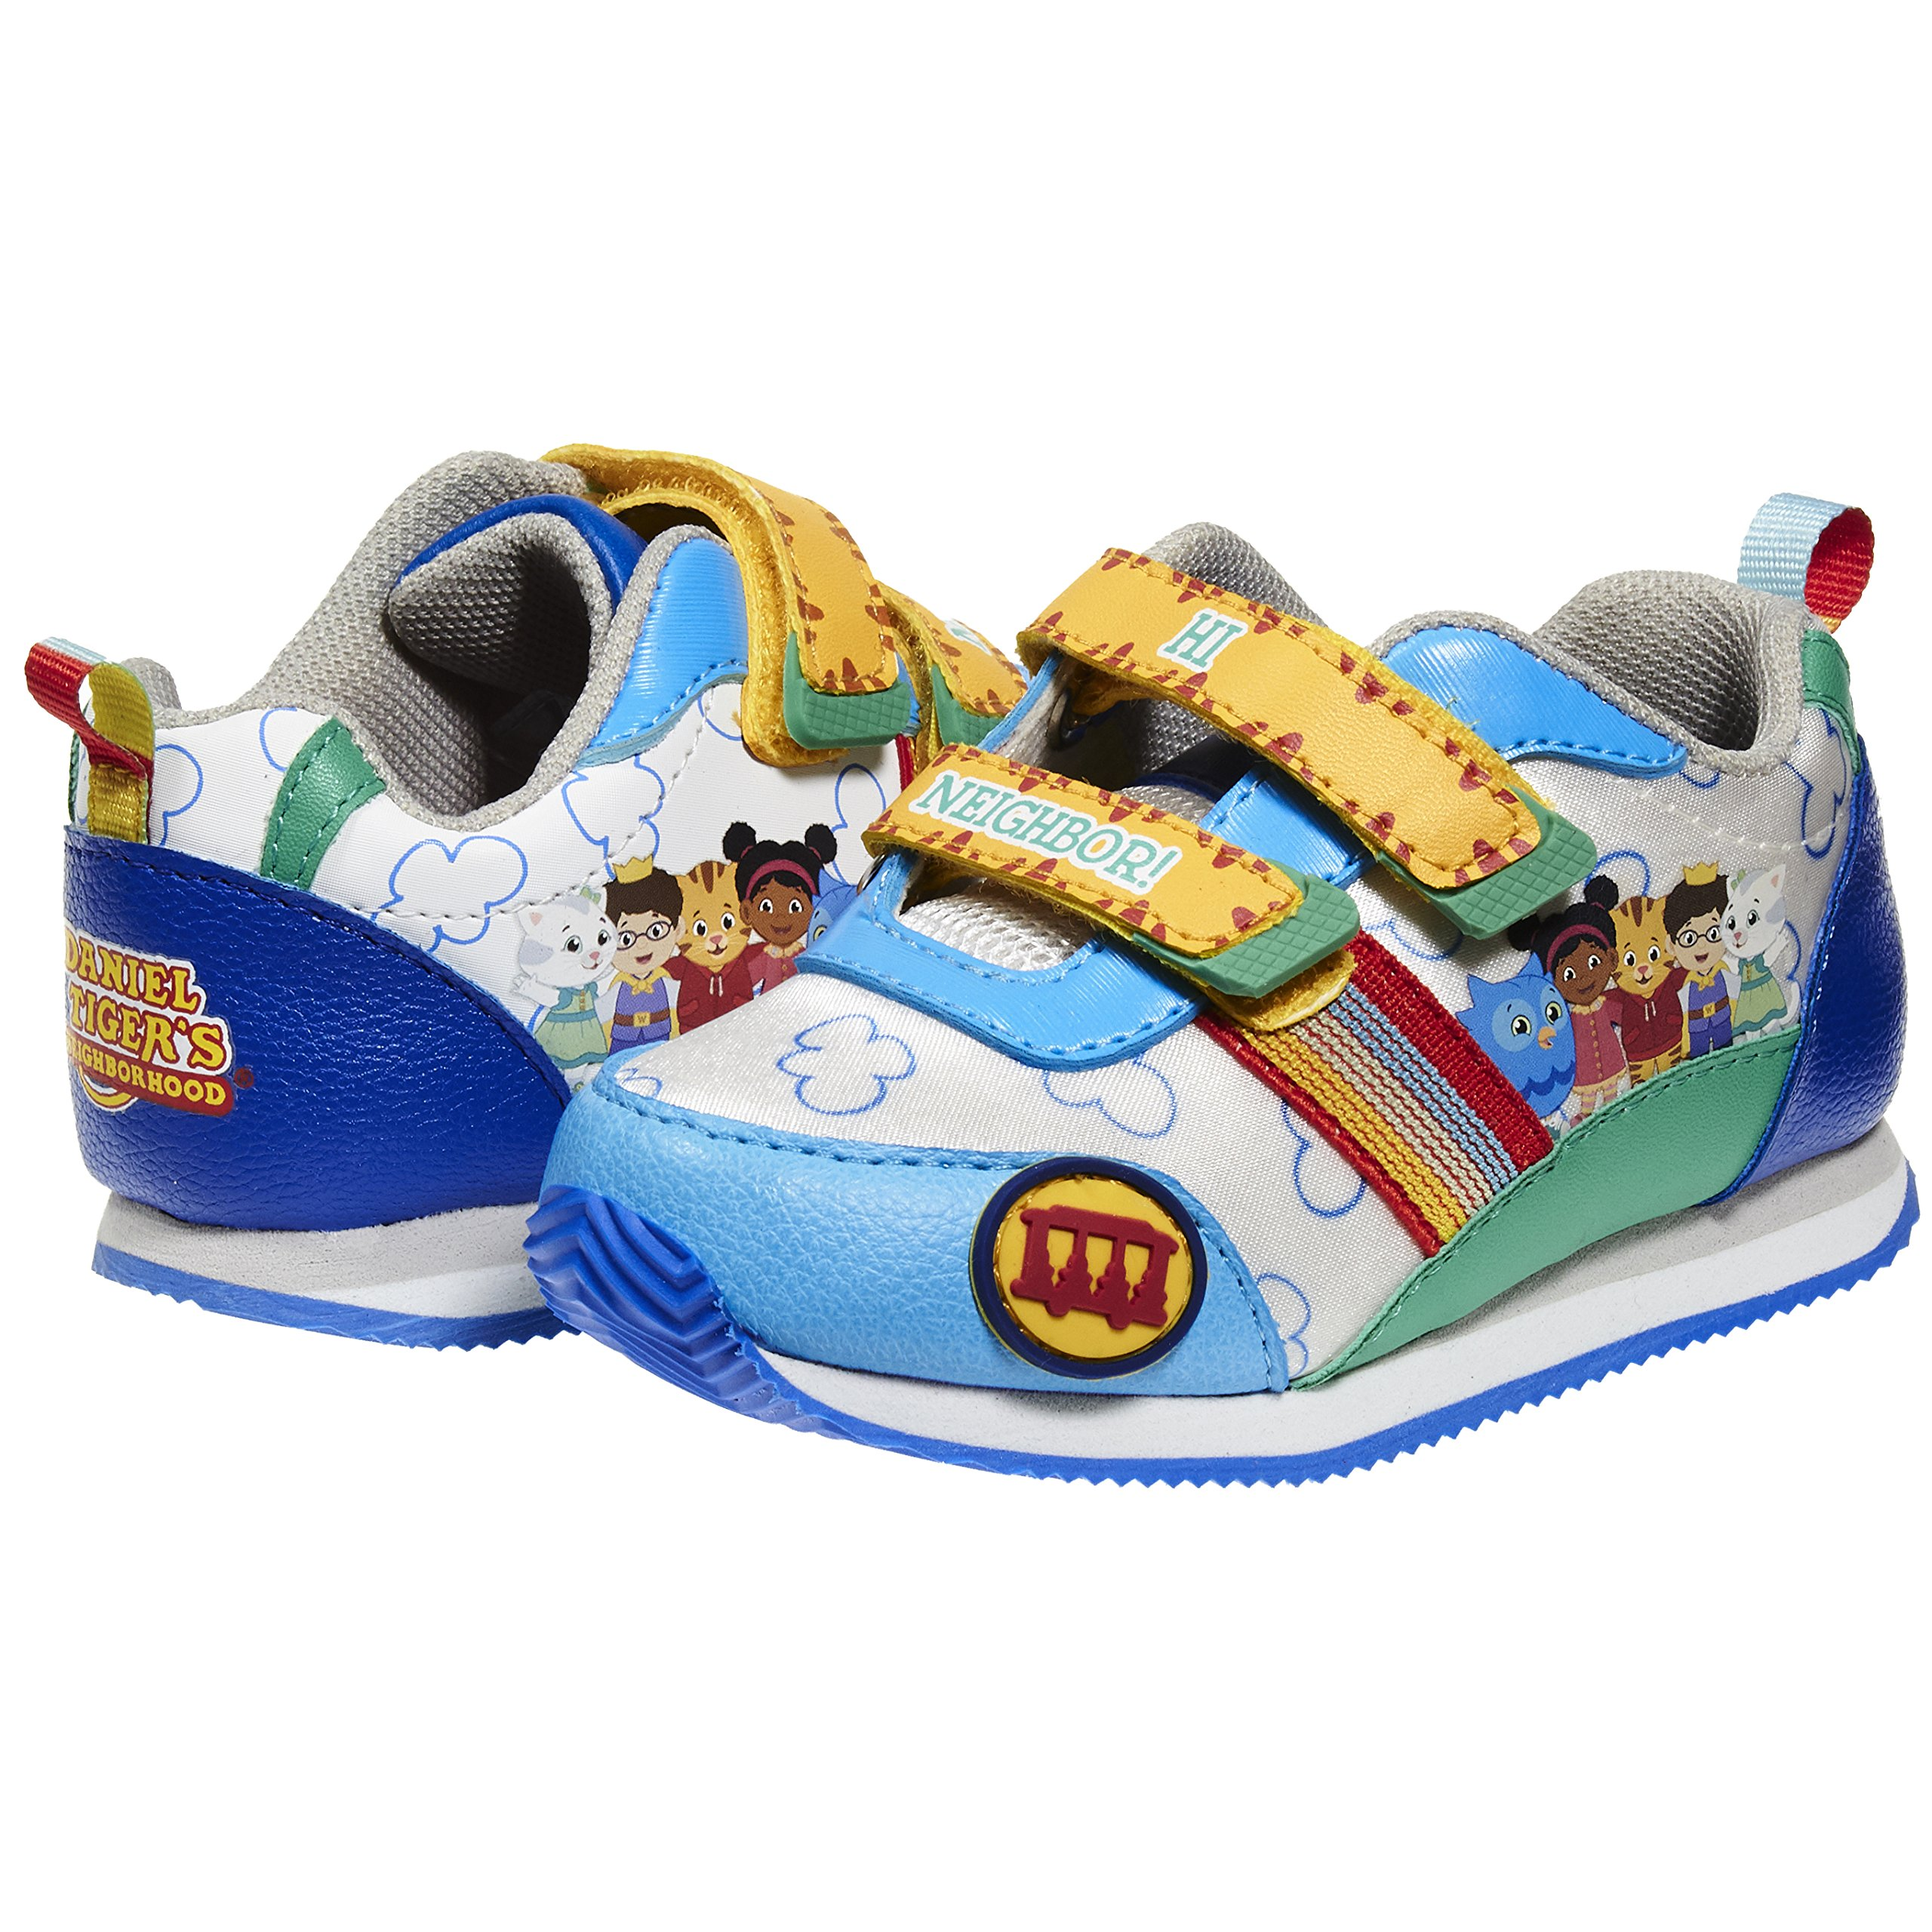 Daniel Tiger Blue/White EVA Sole Sneaker Shoes Boys, Available in (9B, Blue/White)